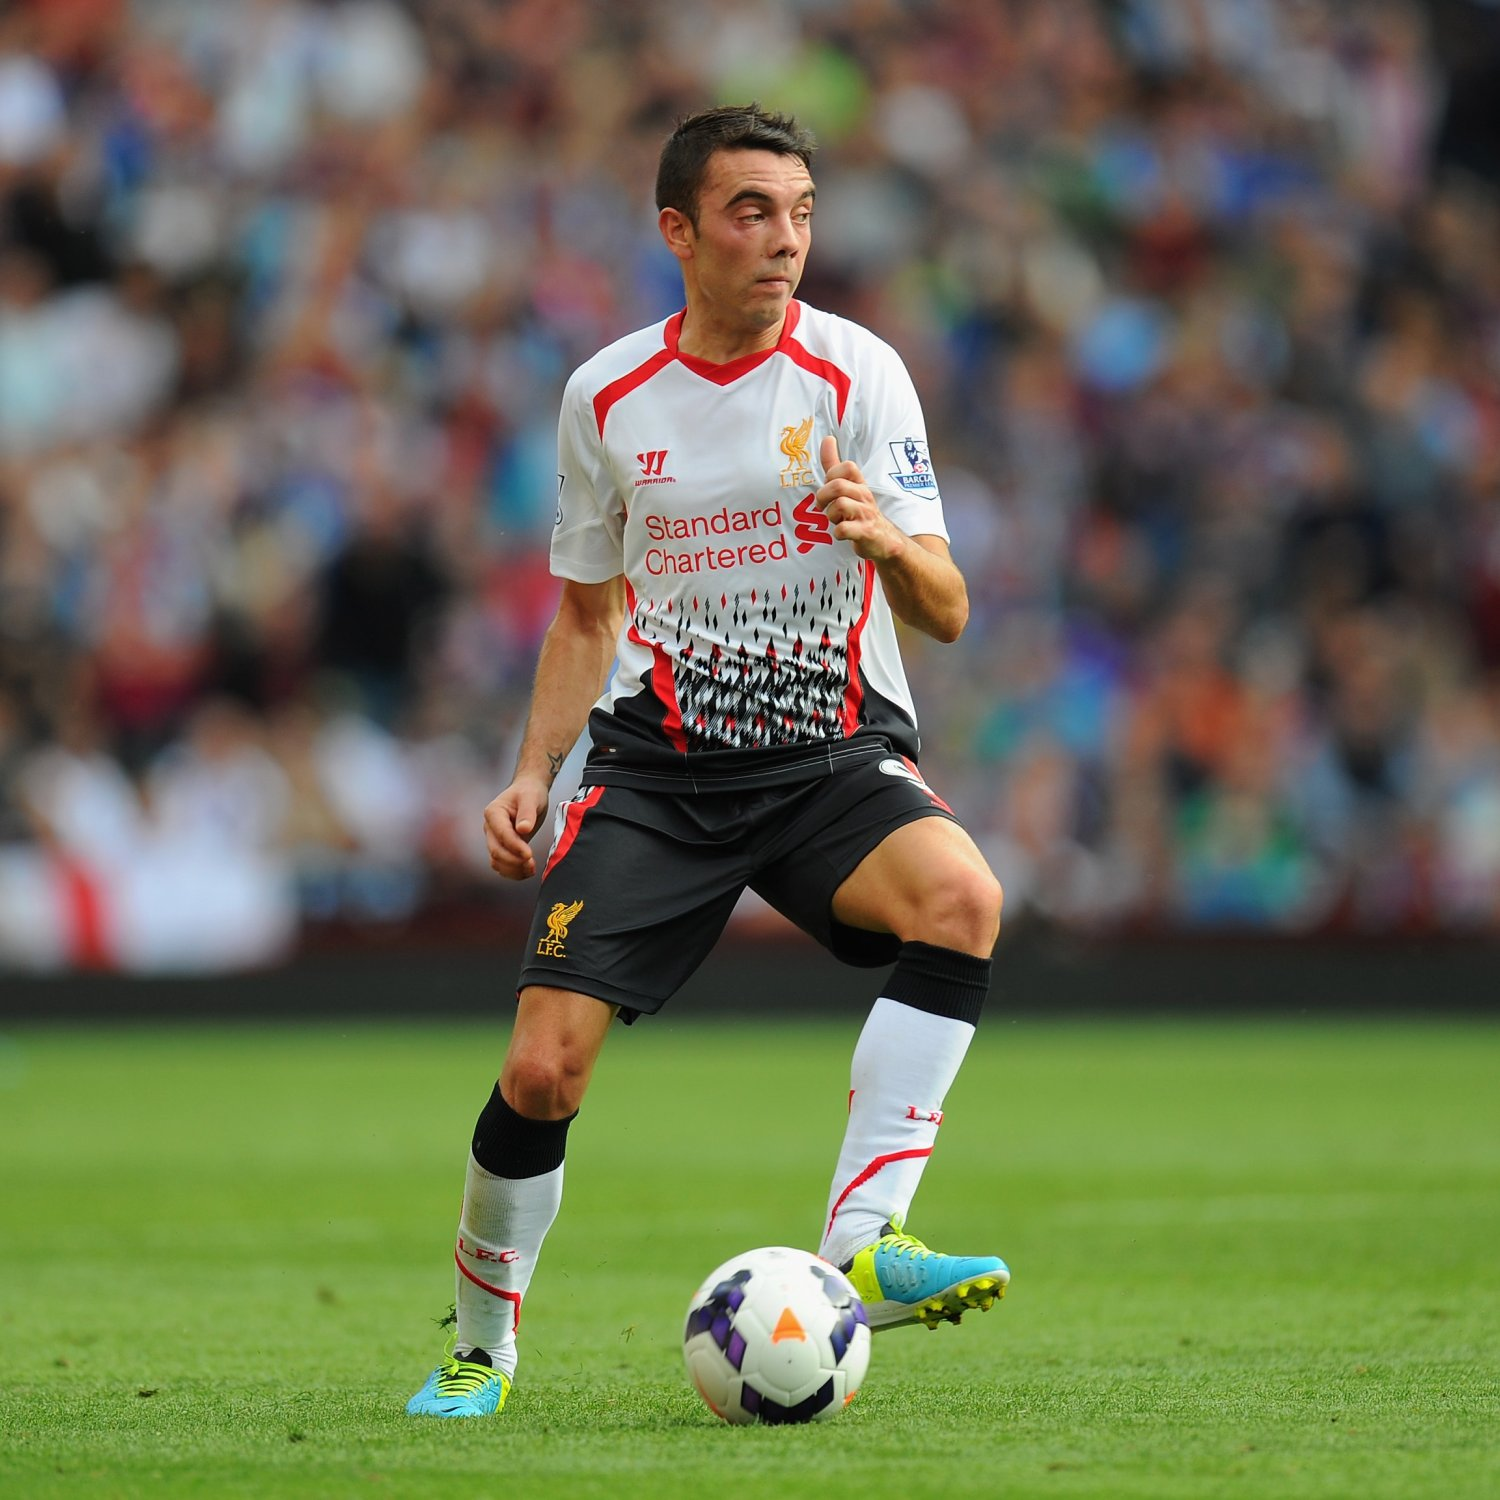 Liverpool Transfer News: Reds Send Iago Aspas on Season-Long Loan to Sevilla | Bleacher Report